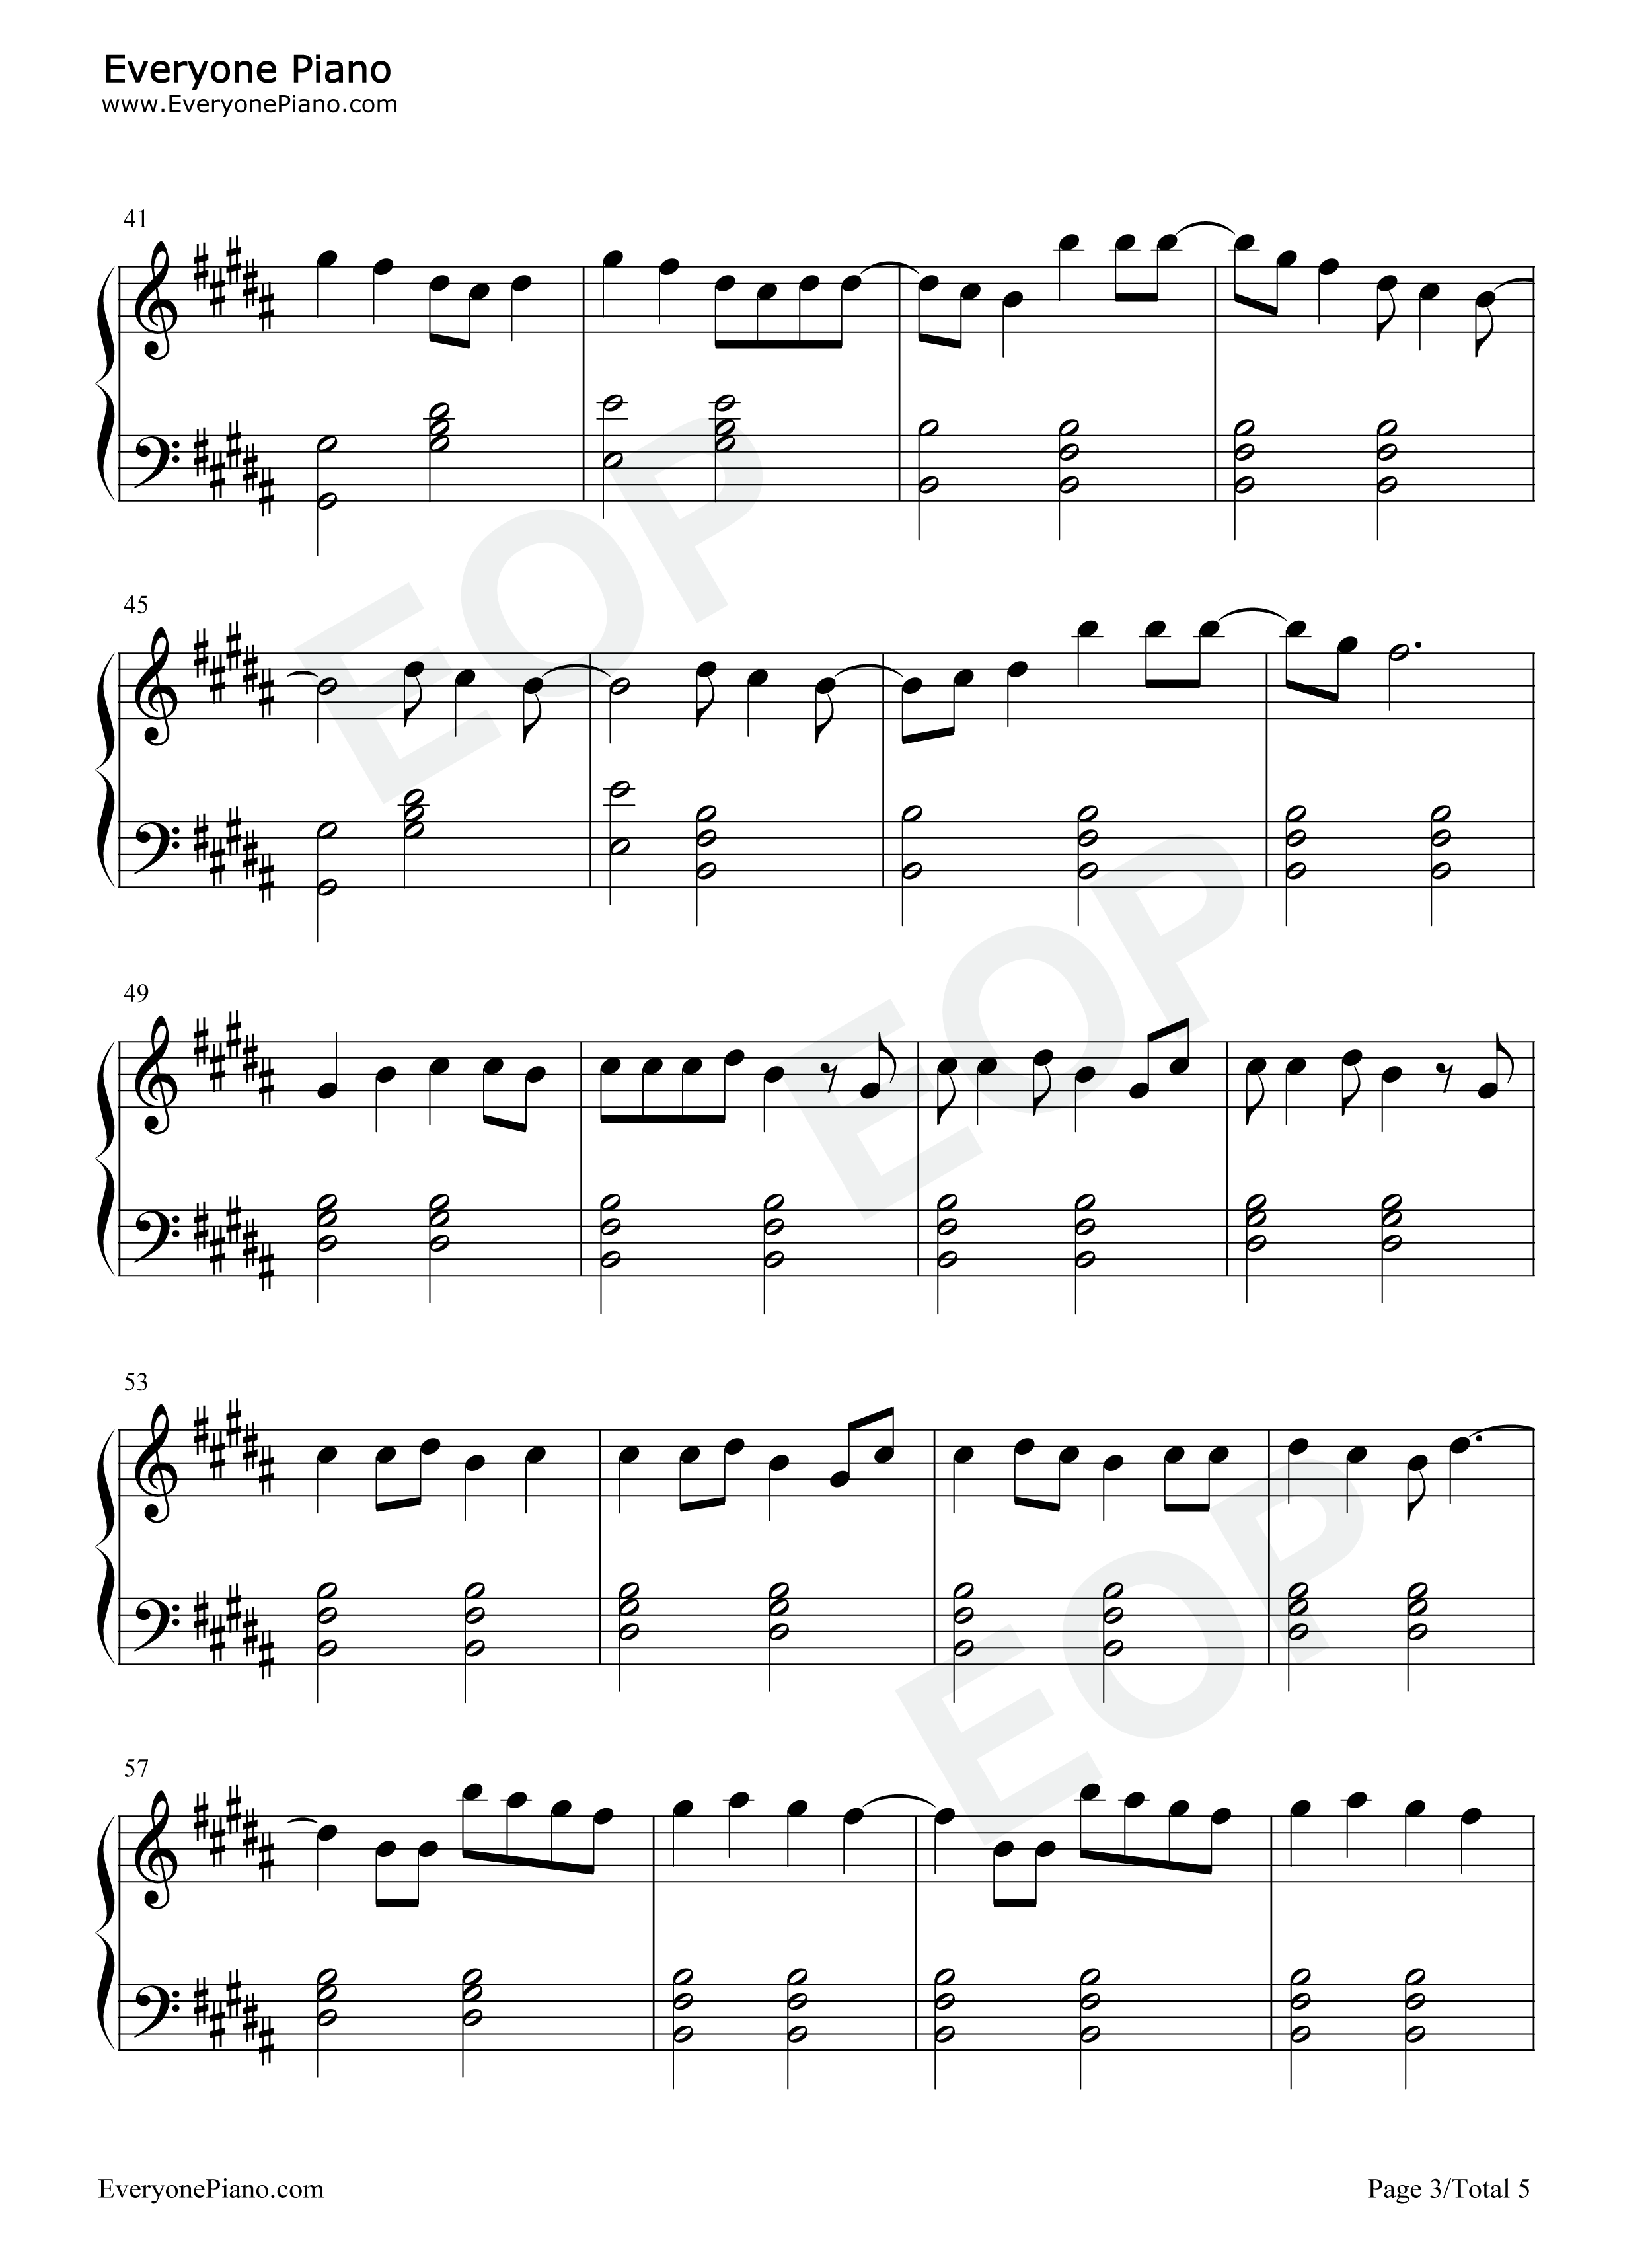 Hallelujah panic at the disco stave preview 3 free piano sheet listen now print sheet hallelujah panic at the disco stave preview 3 hexwebz Gallery